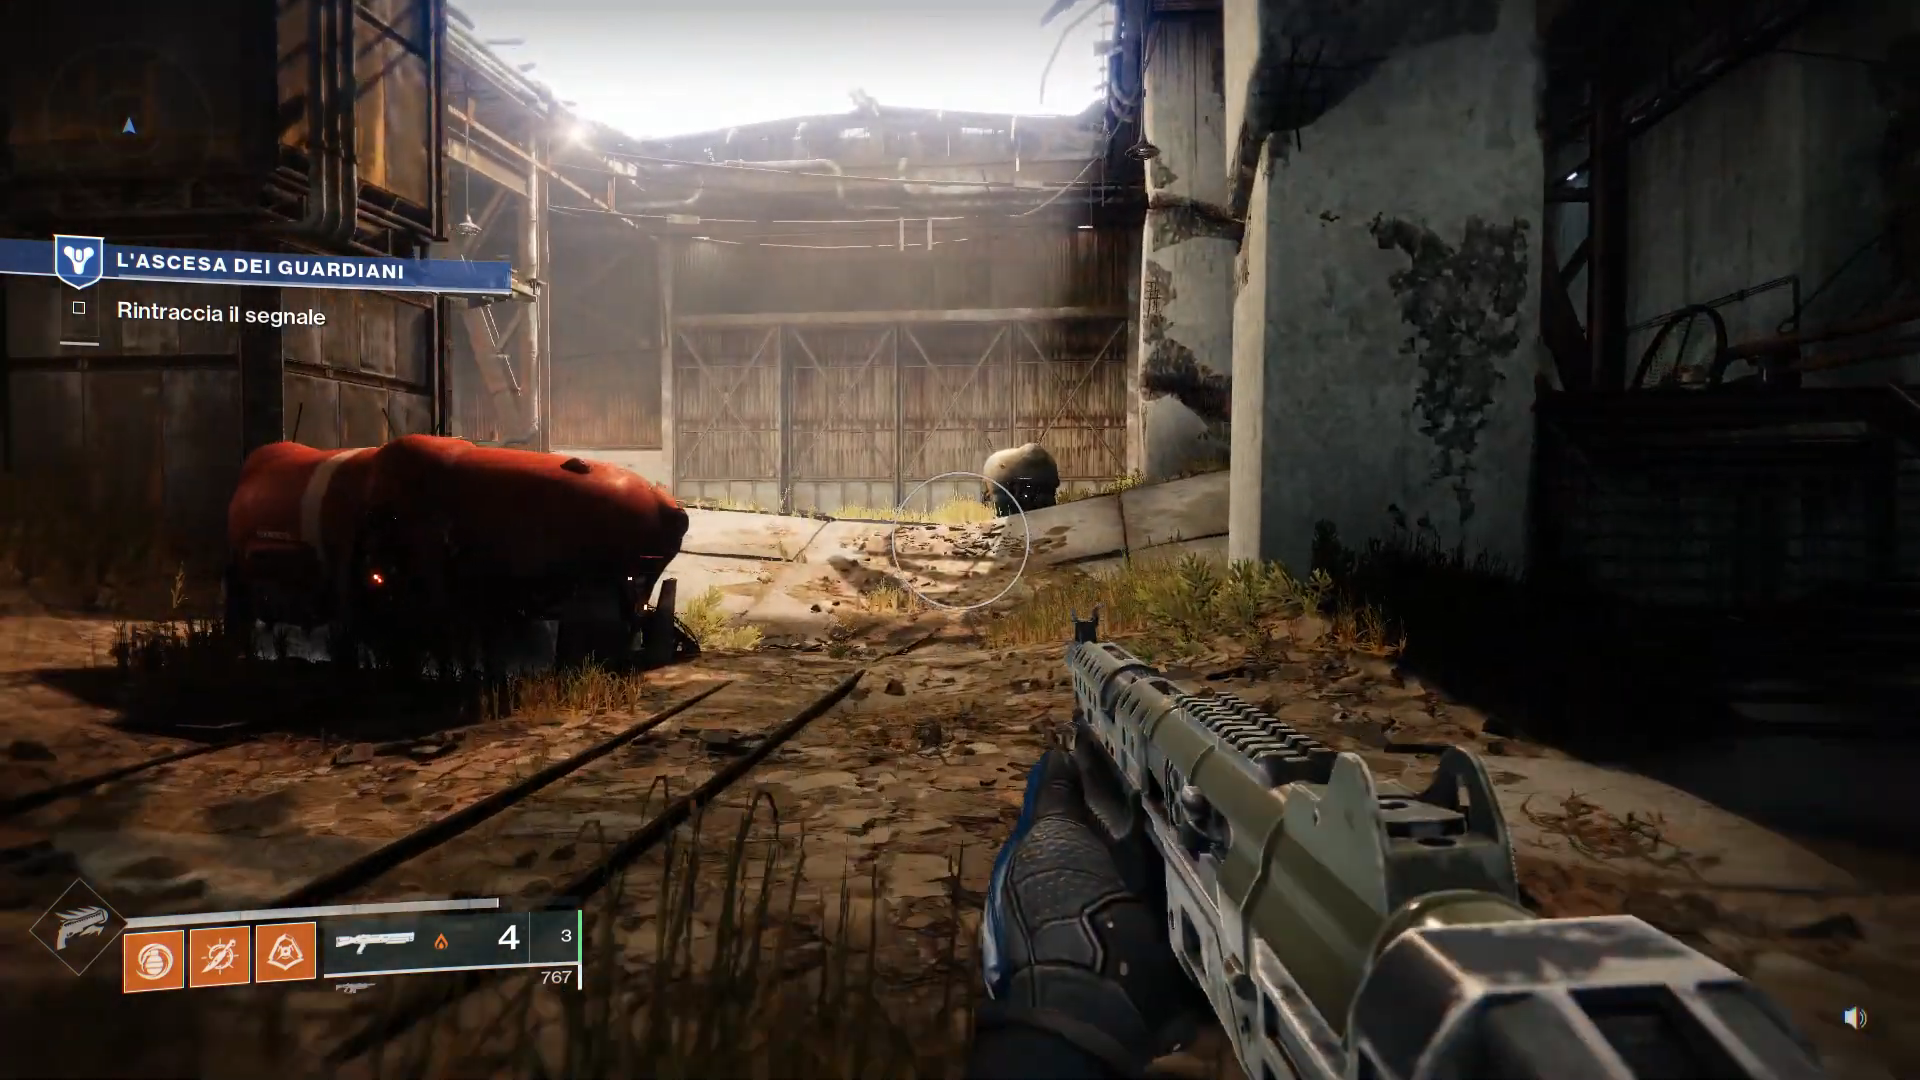 Media asset in full size related to 3dfxzone.it news item entitled as follows: YouTube Gaming | Gameplay | Destiny 2 with high graphics settings | Image Name: news32059_Destiny-2-Screenshots_2.png